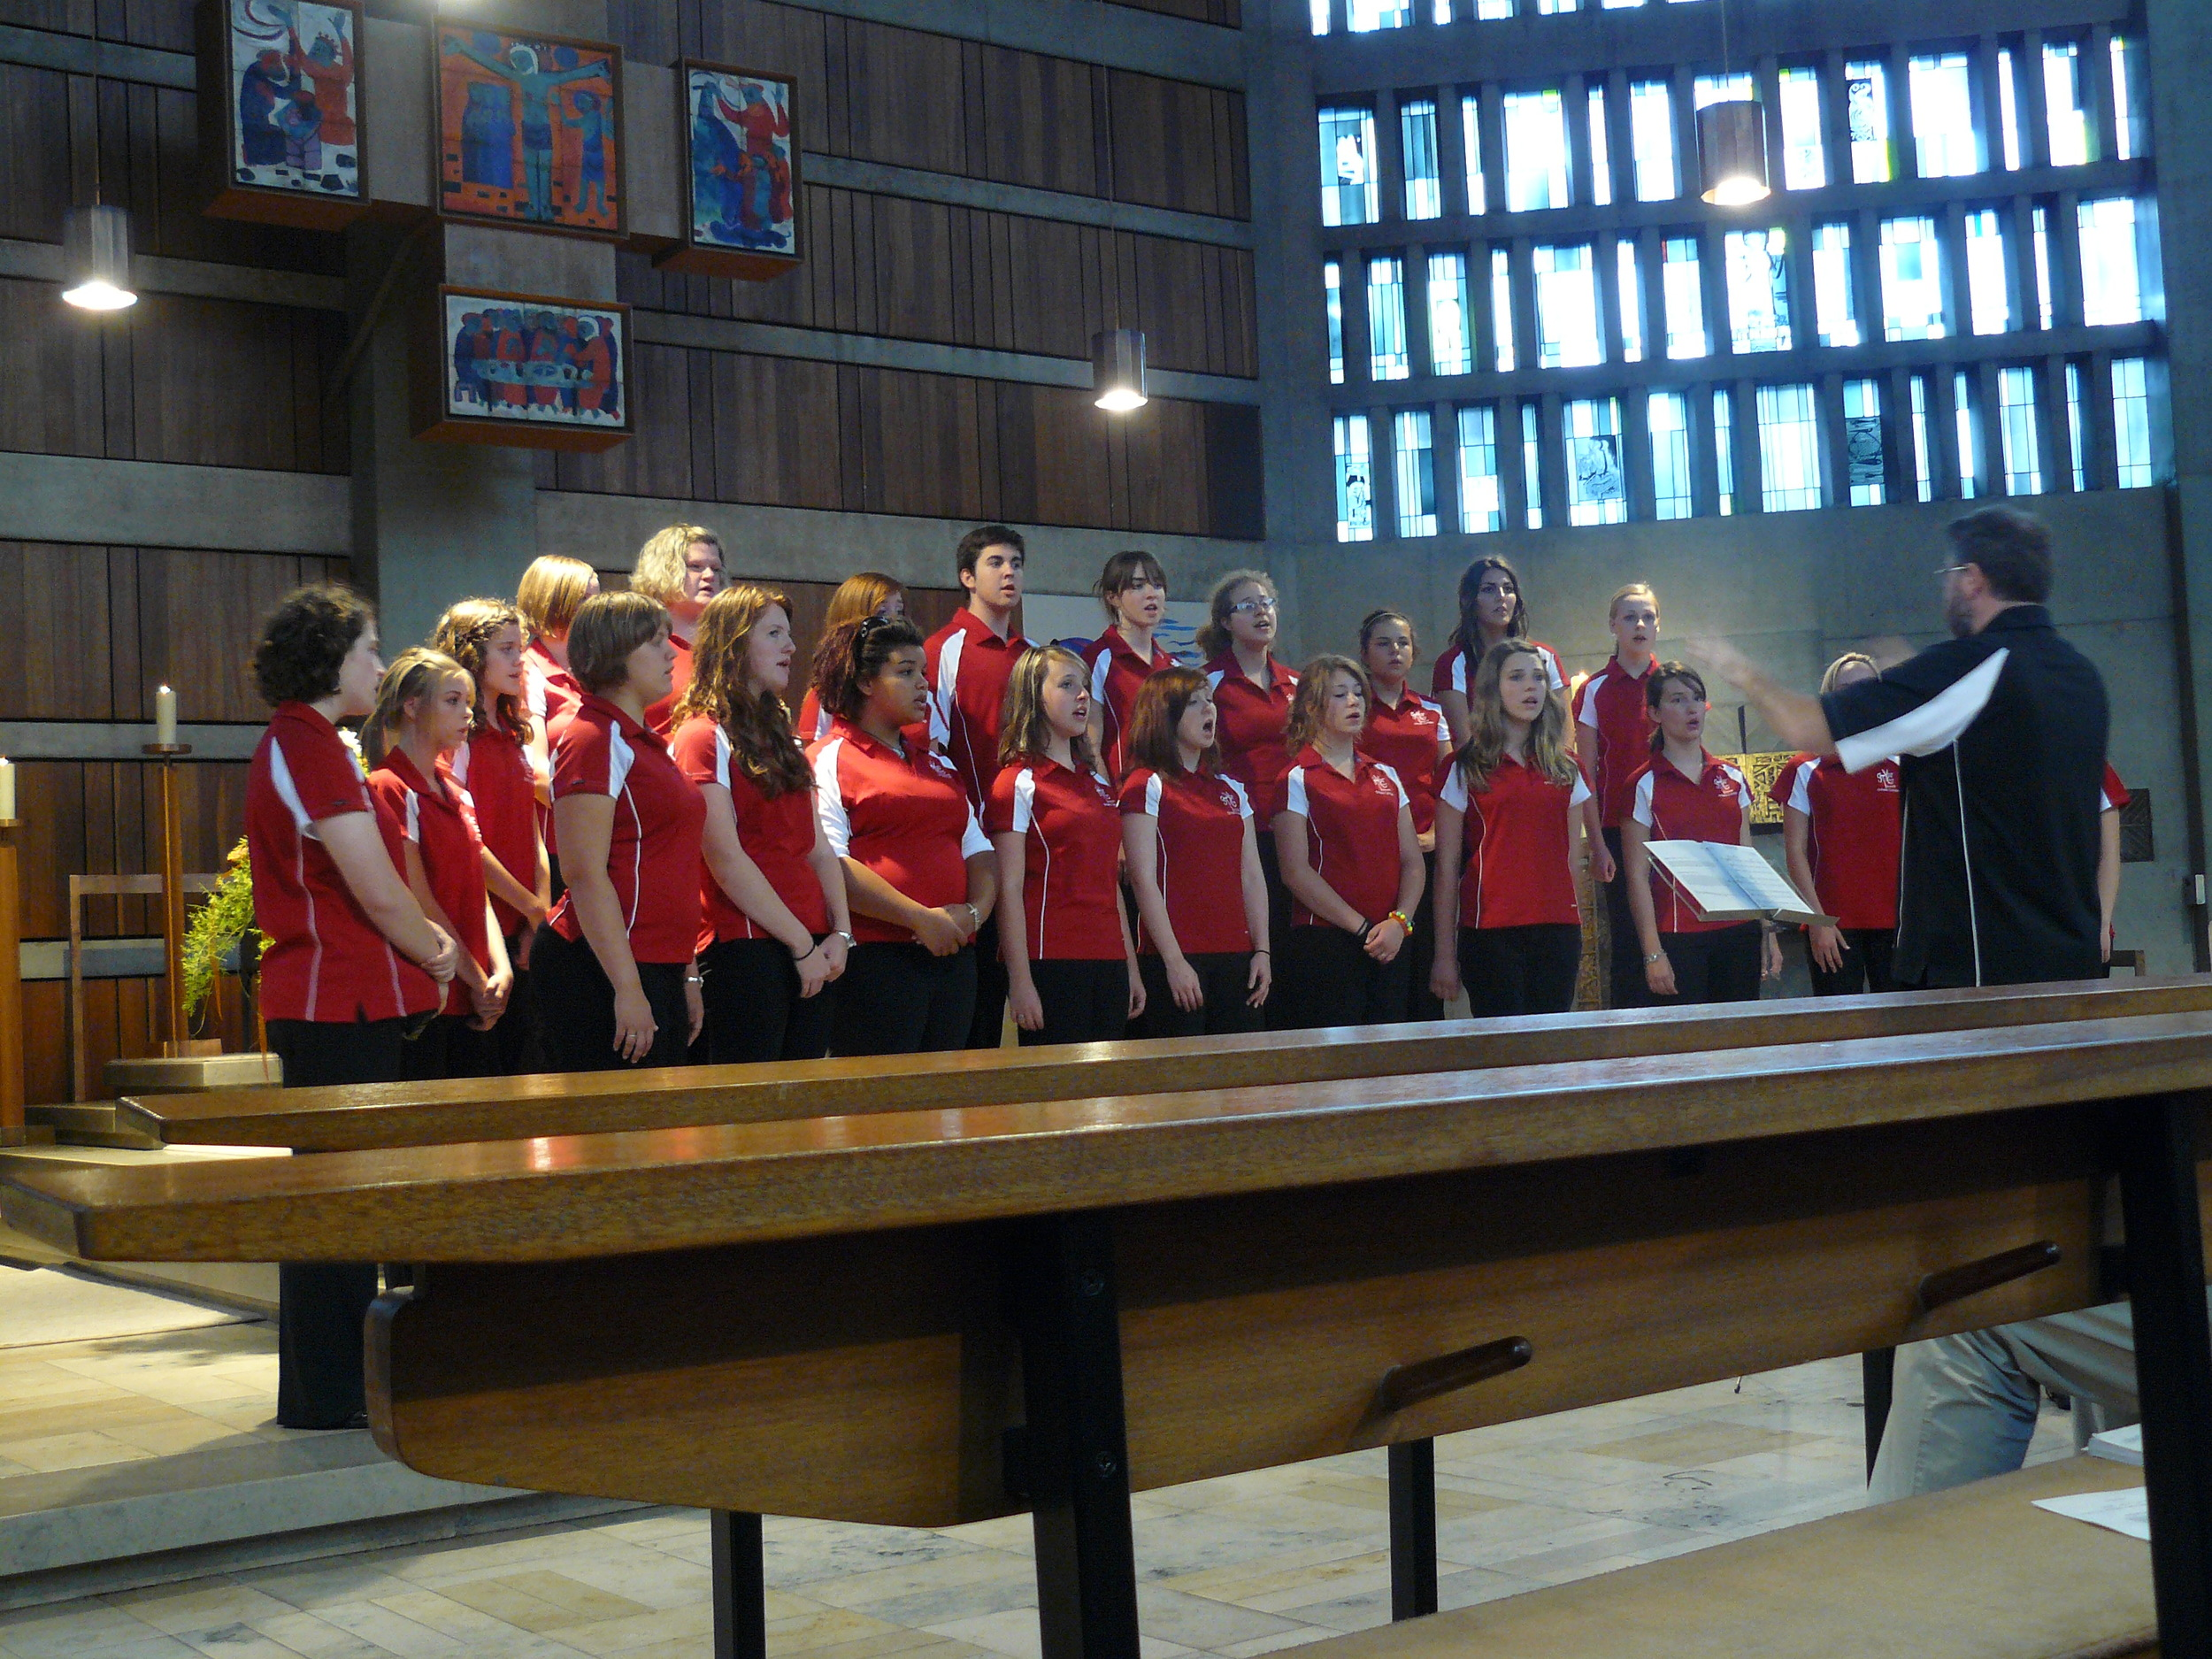 Performance at Christkonnigkirche (Christ the King Church) in Ansbach.